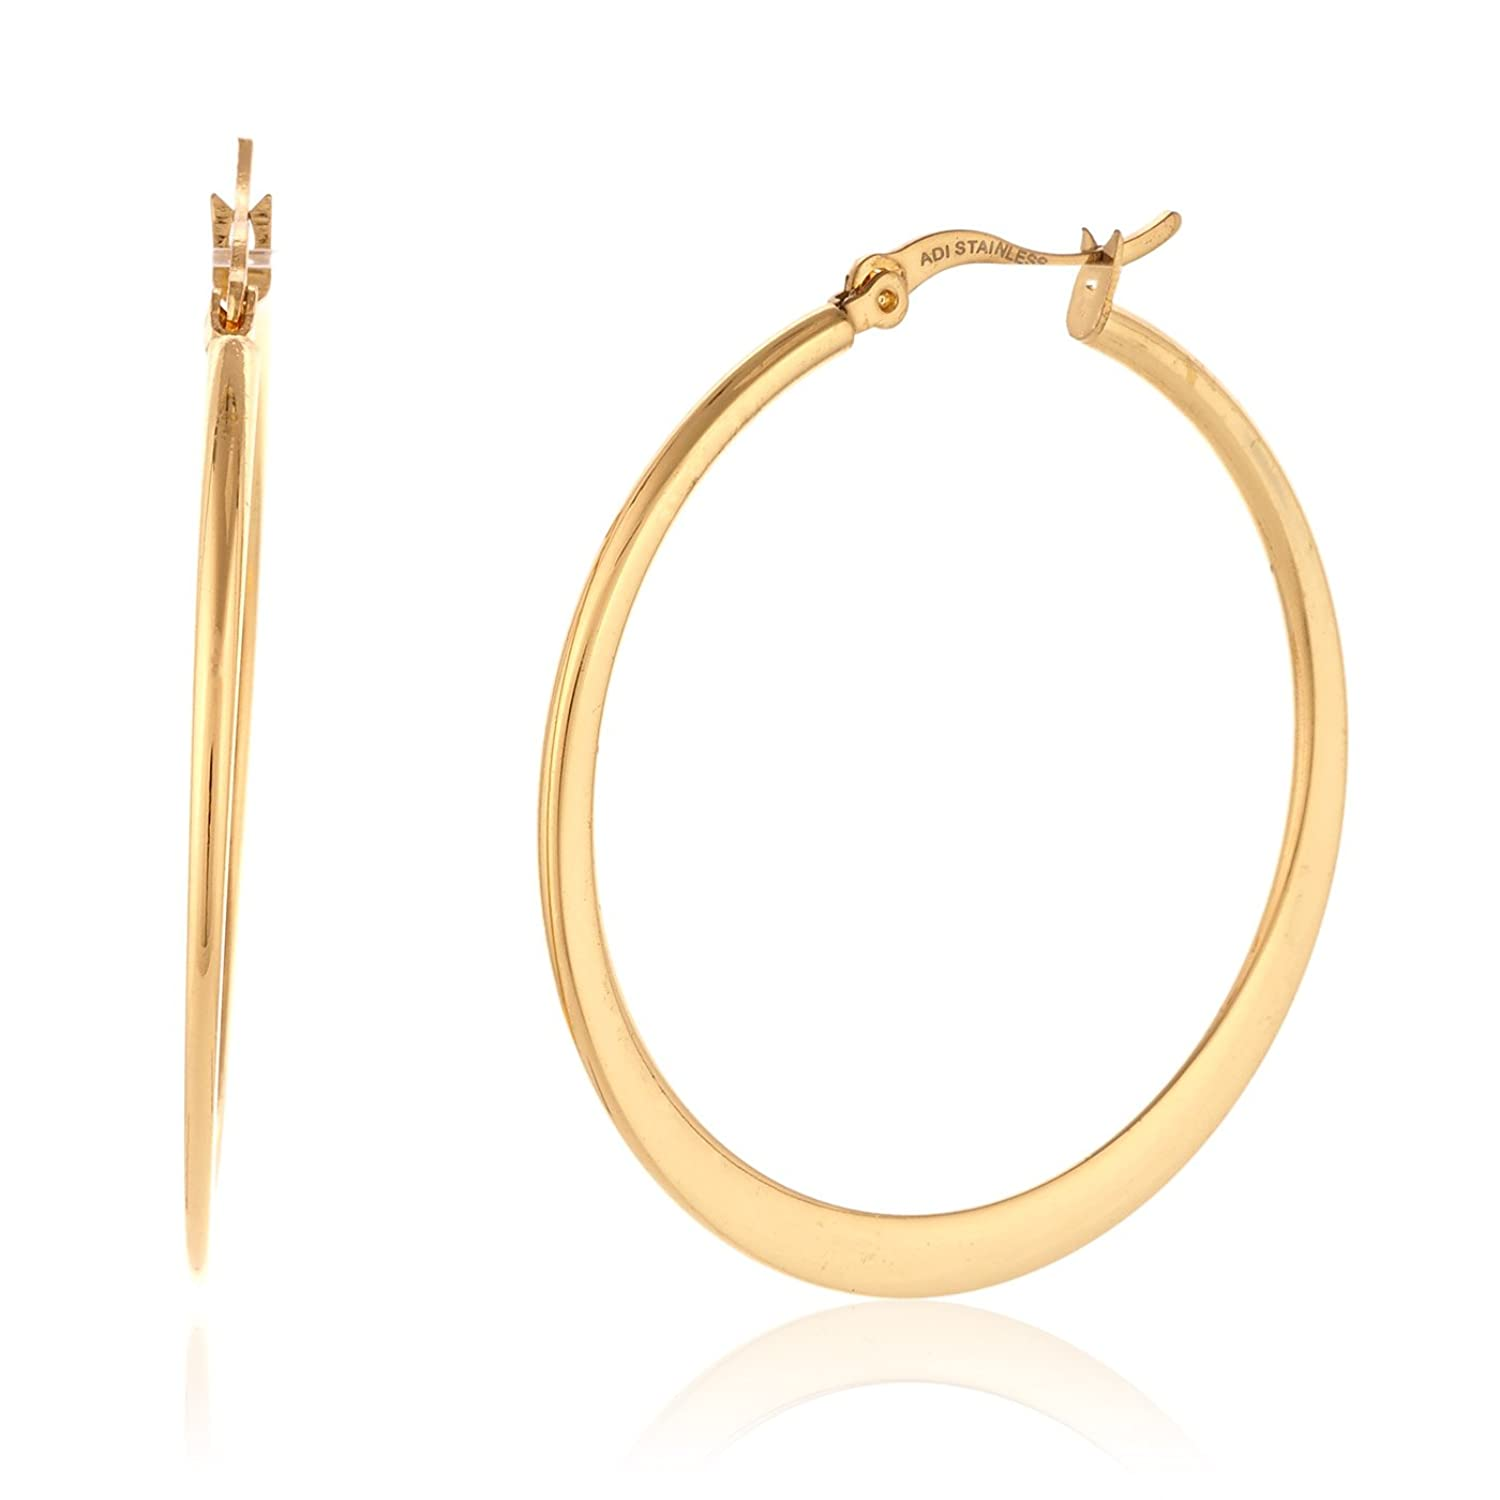 Rounded Gold Plated Hoop Earrings in Gift Box (39mm Diameter)